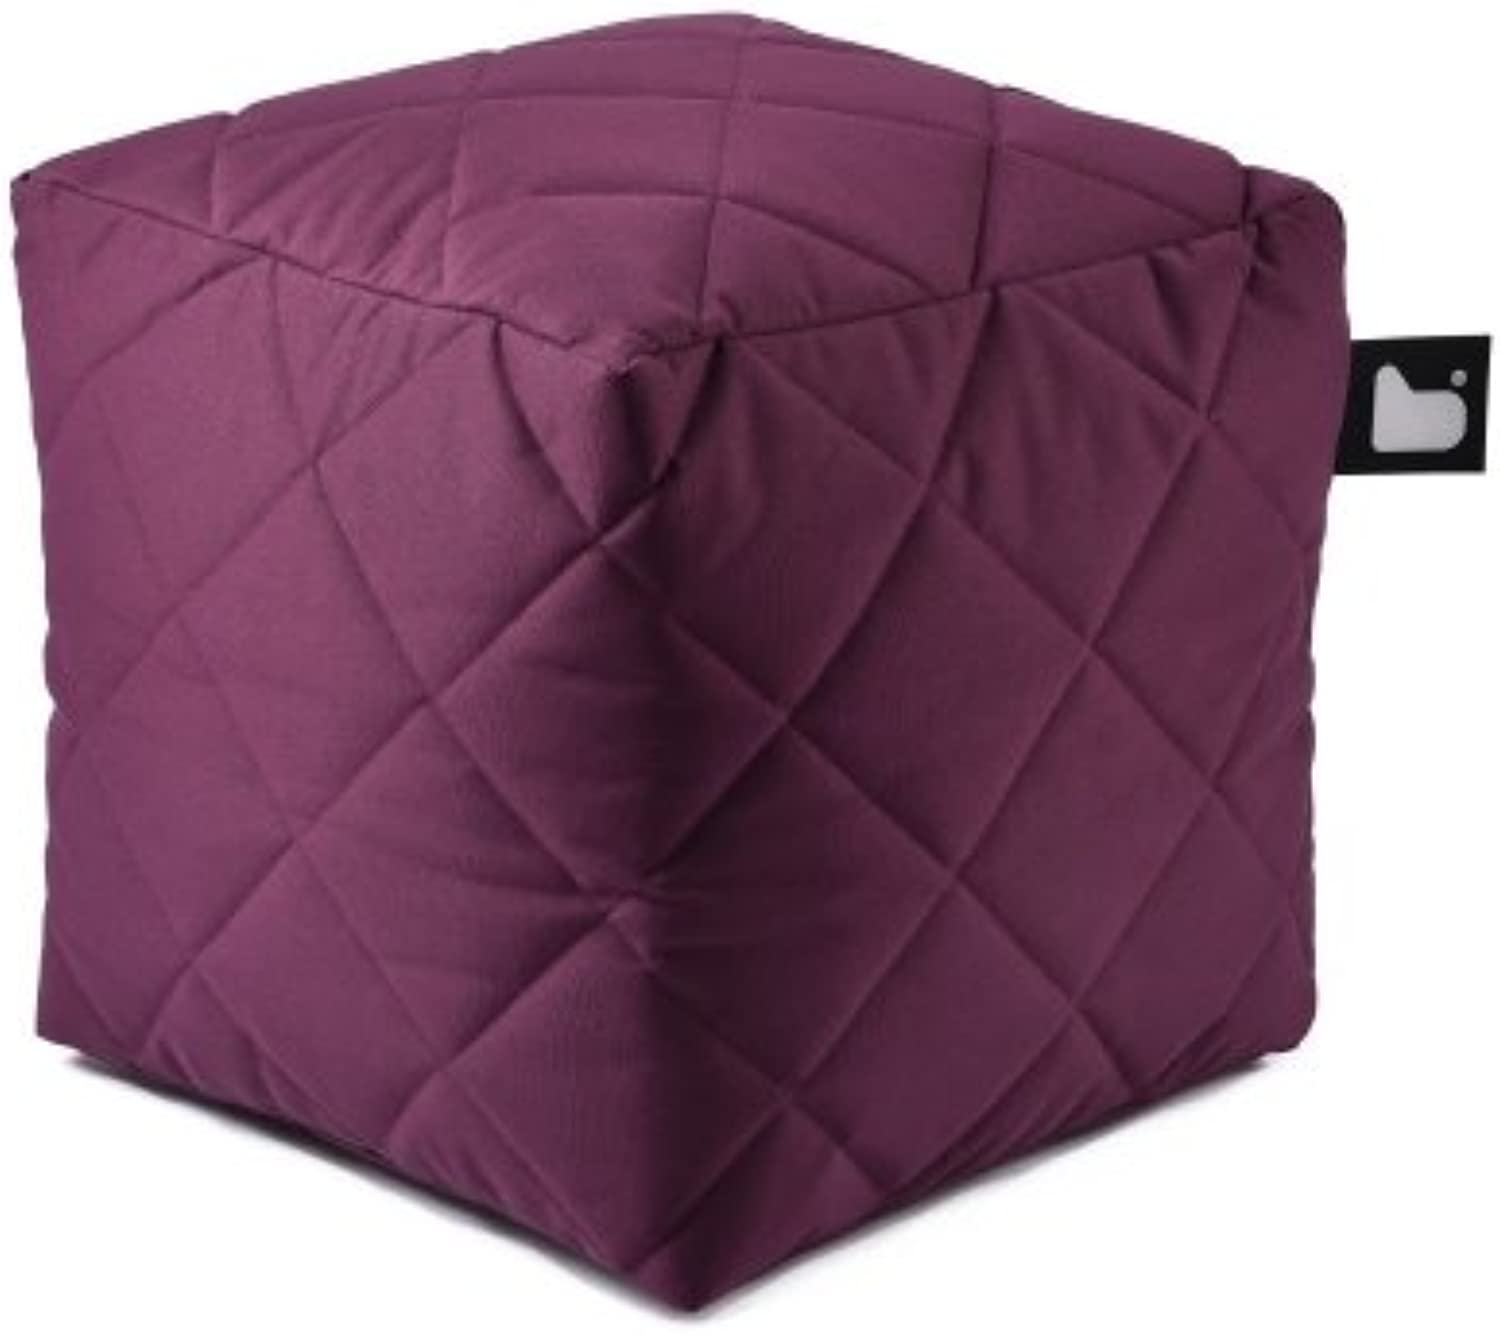 B-bag b-Box Outdoor Sitzhocker Quilted l Berry Lila